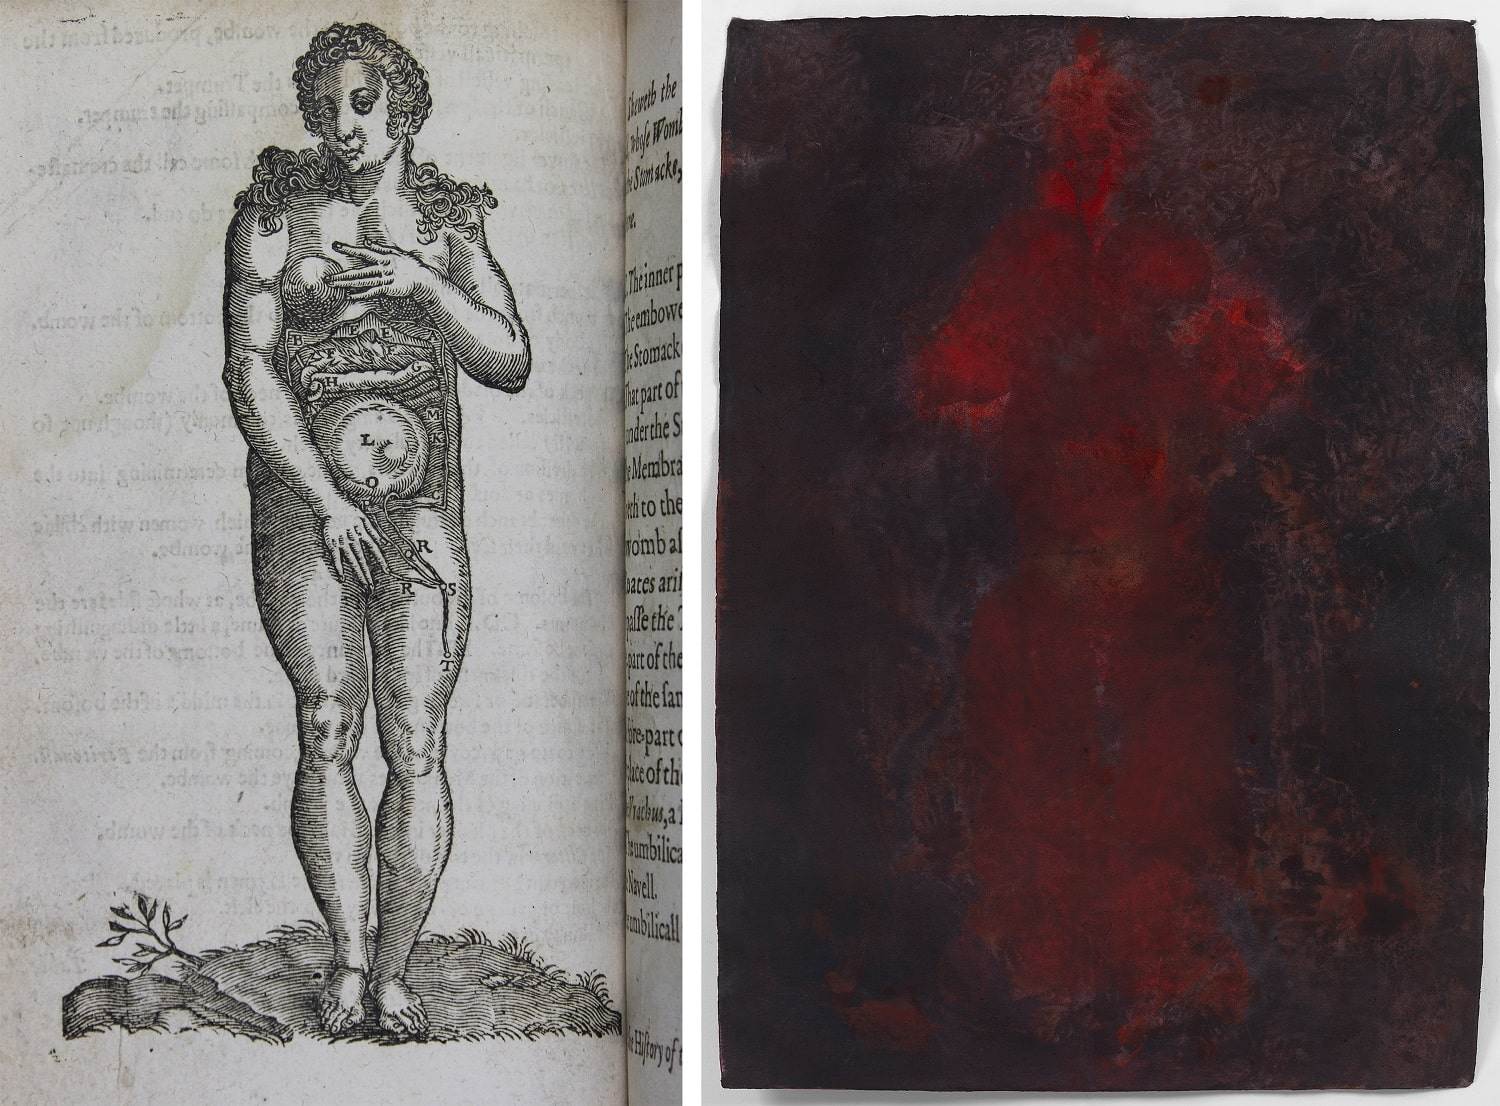 Print of a woman's anatomy showing abdomen and womb in late pregnancy on left. On right, life sized body print of a woman.